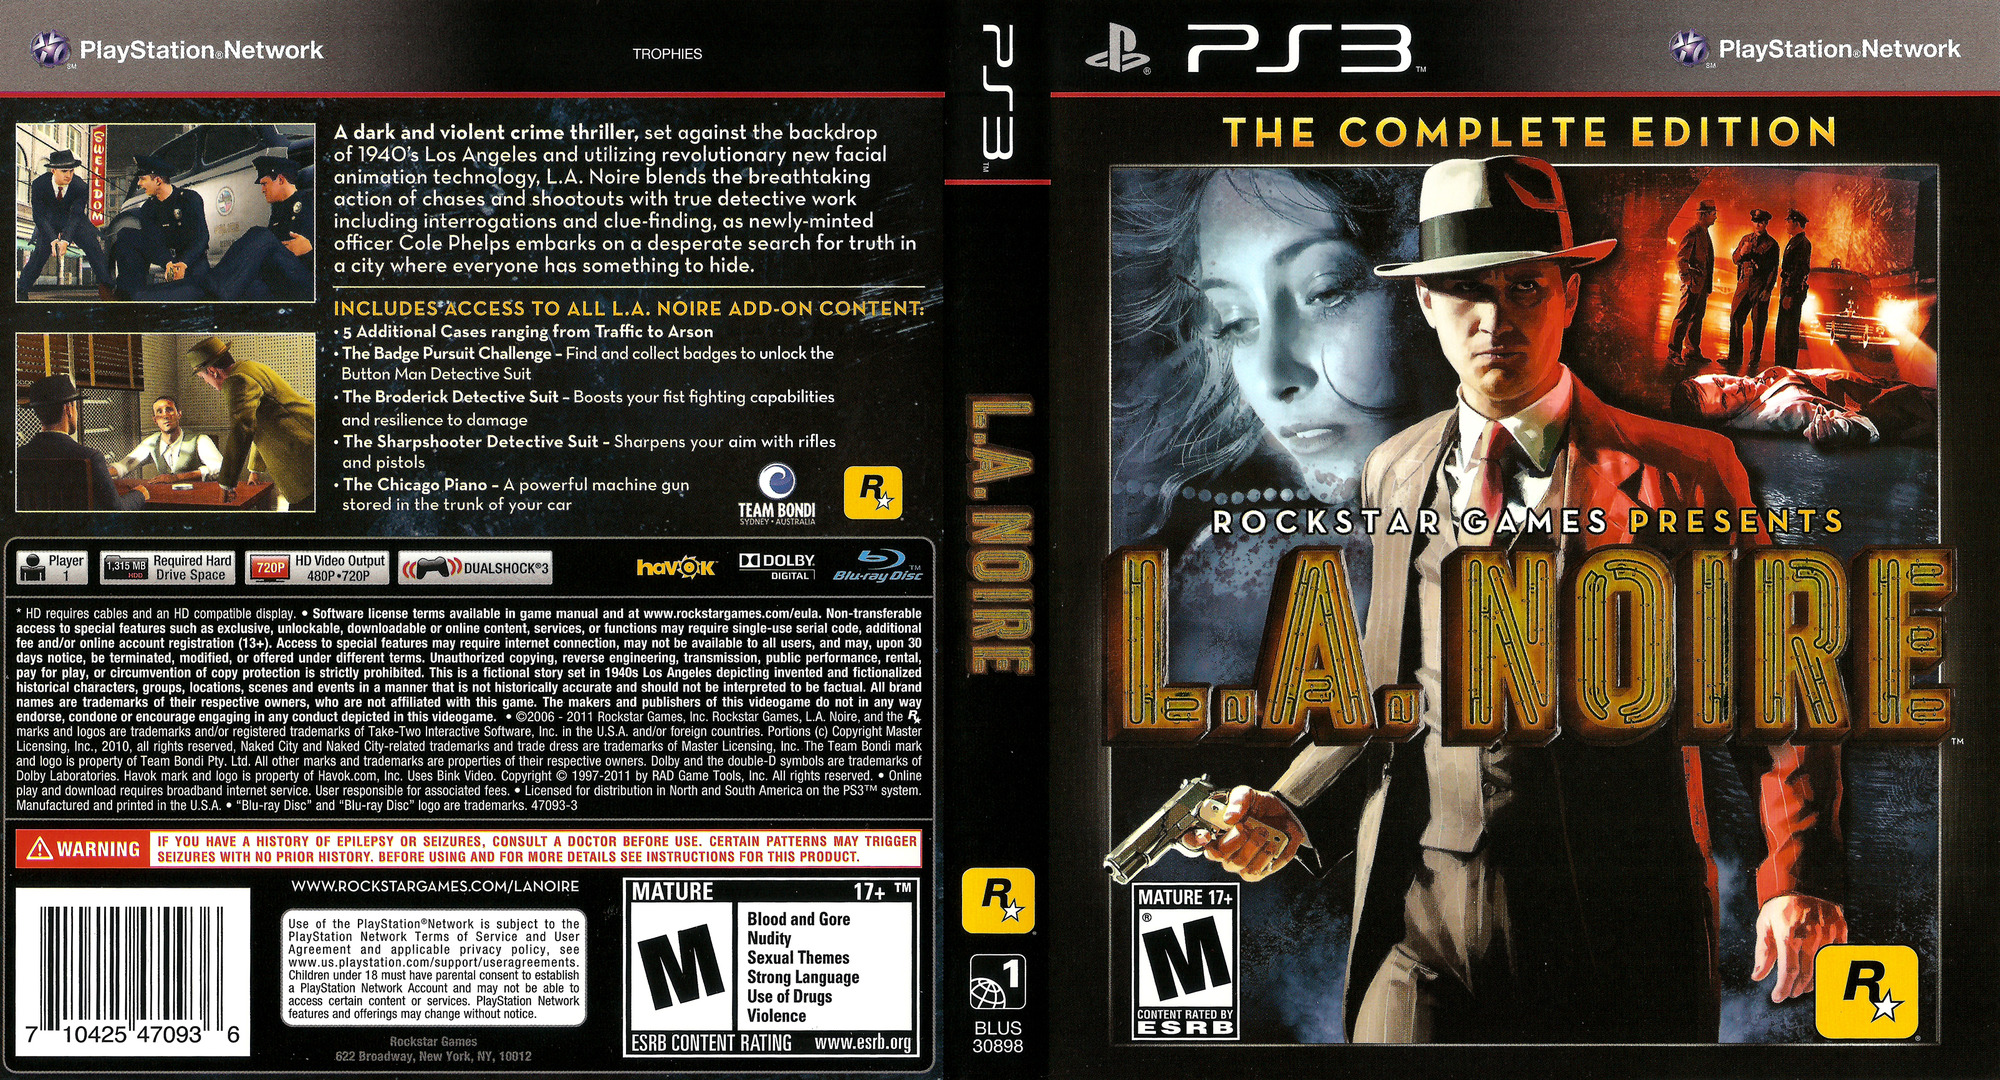 L.A. Noire - The Complete Edition PS3 coverfullHQ (BLUS30898)